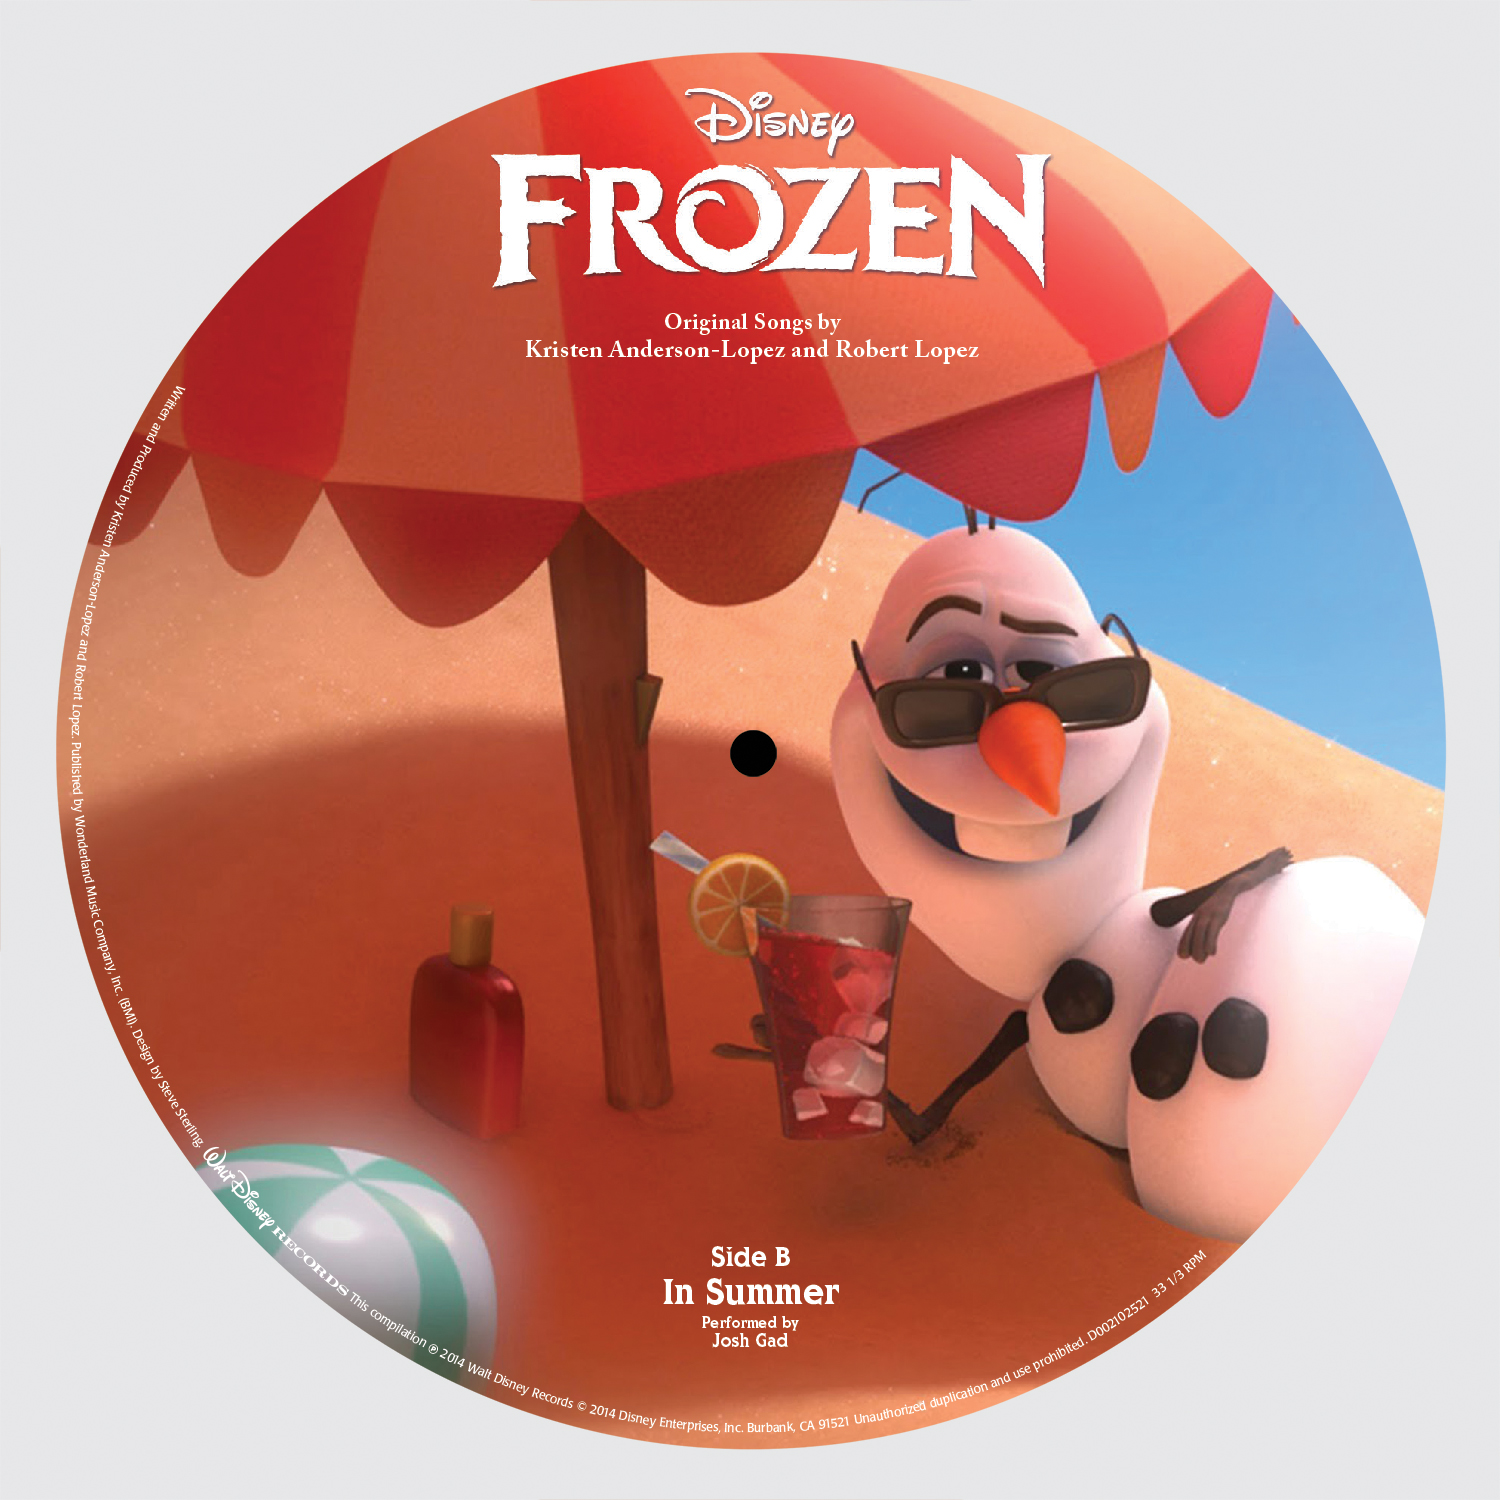 Disney Frozen Record Store Day